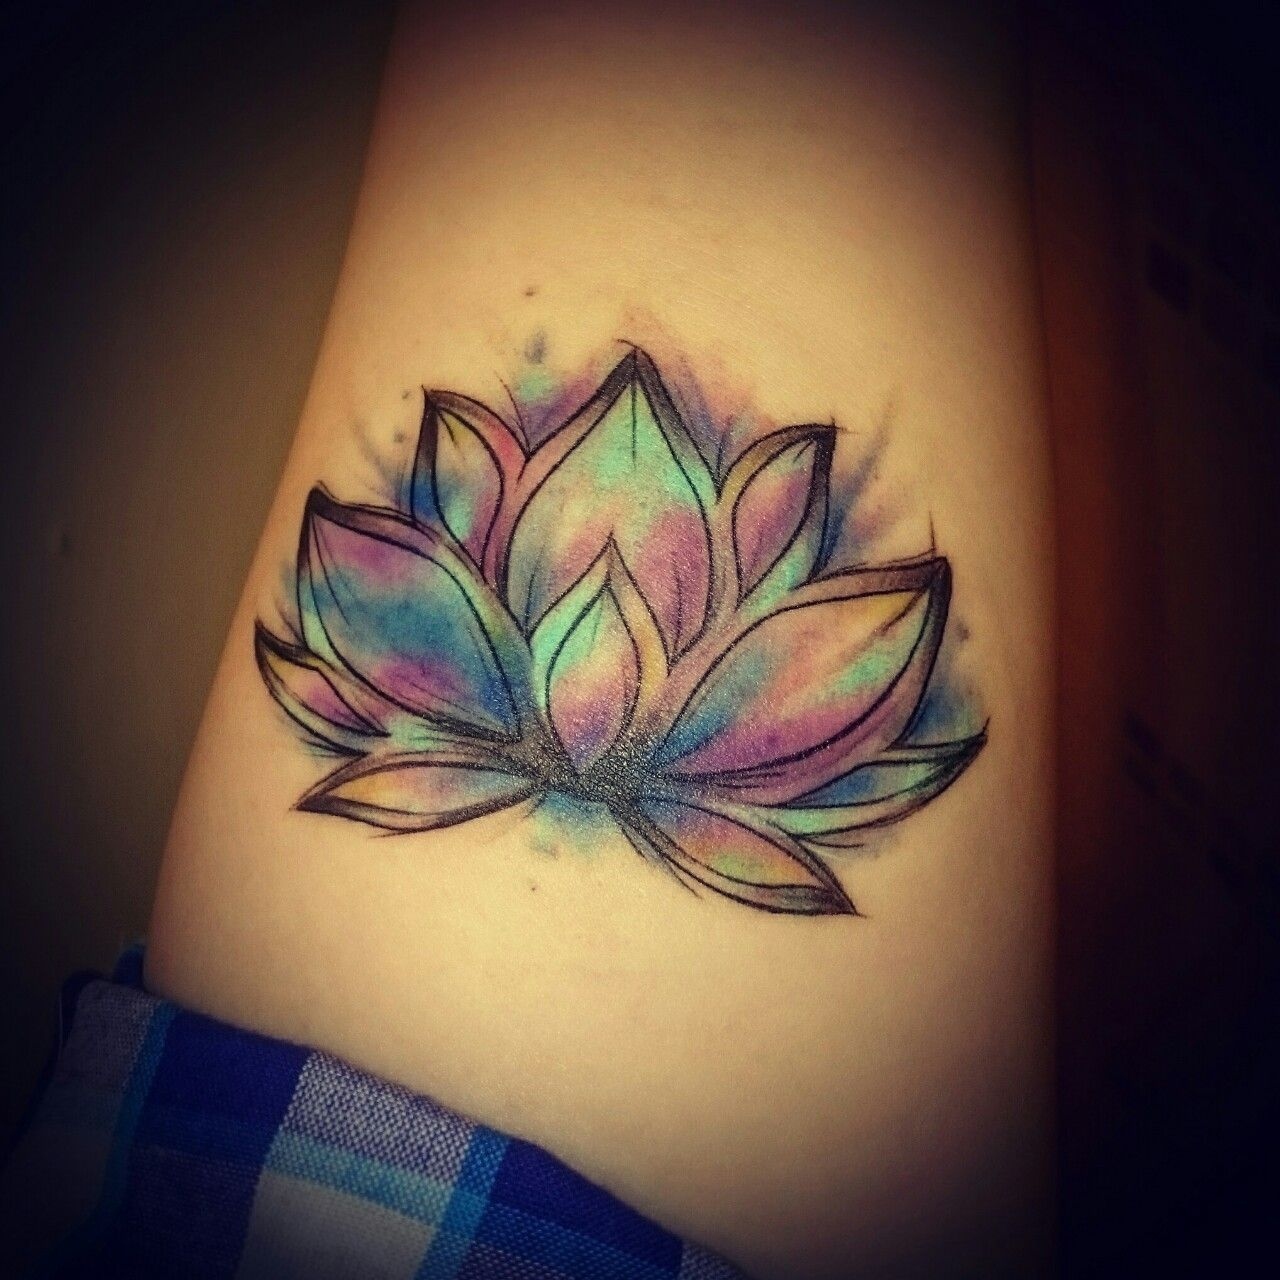 My new tattoo. It's a lotus The flower retreats back into